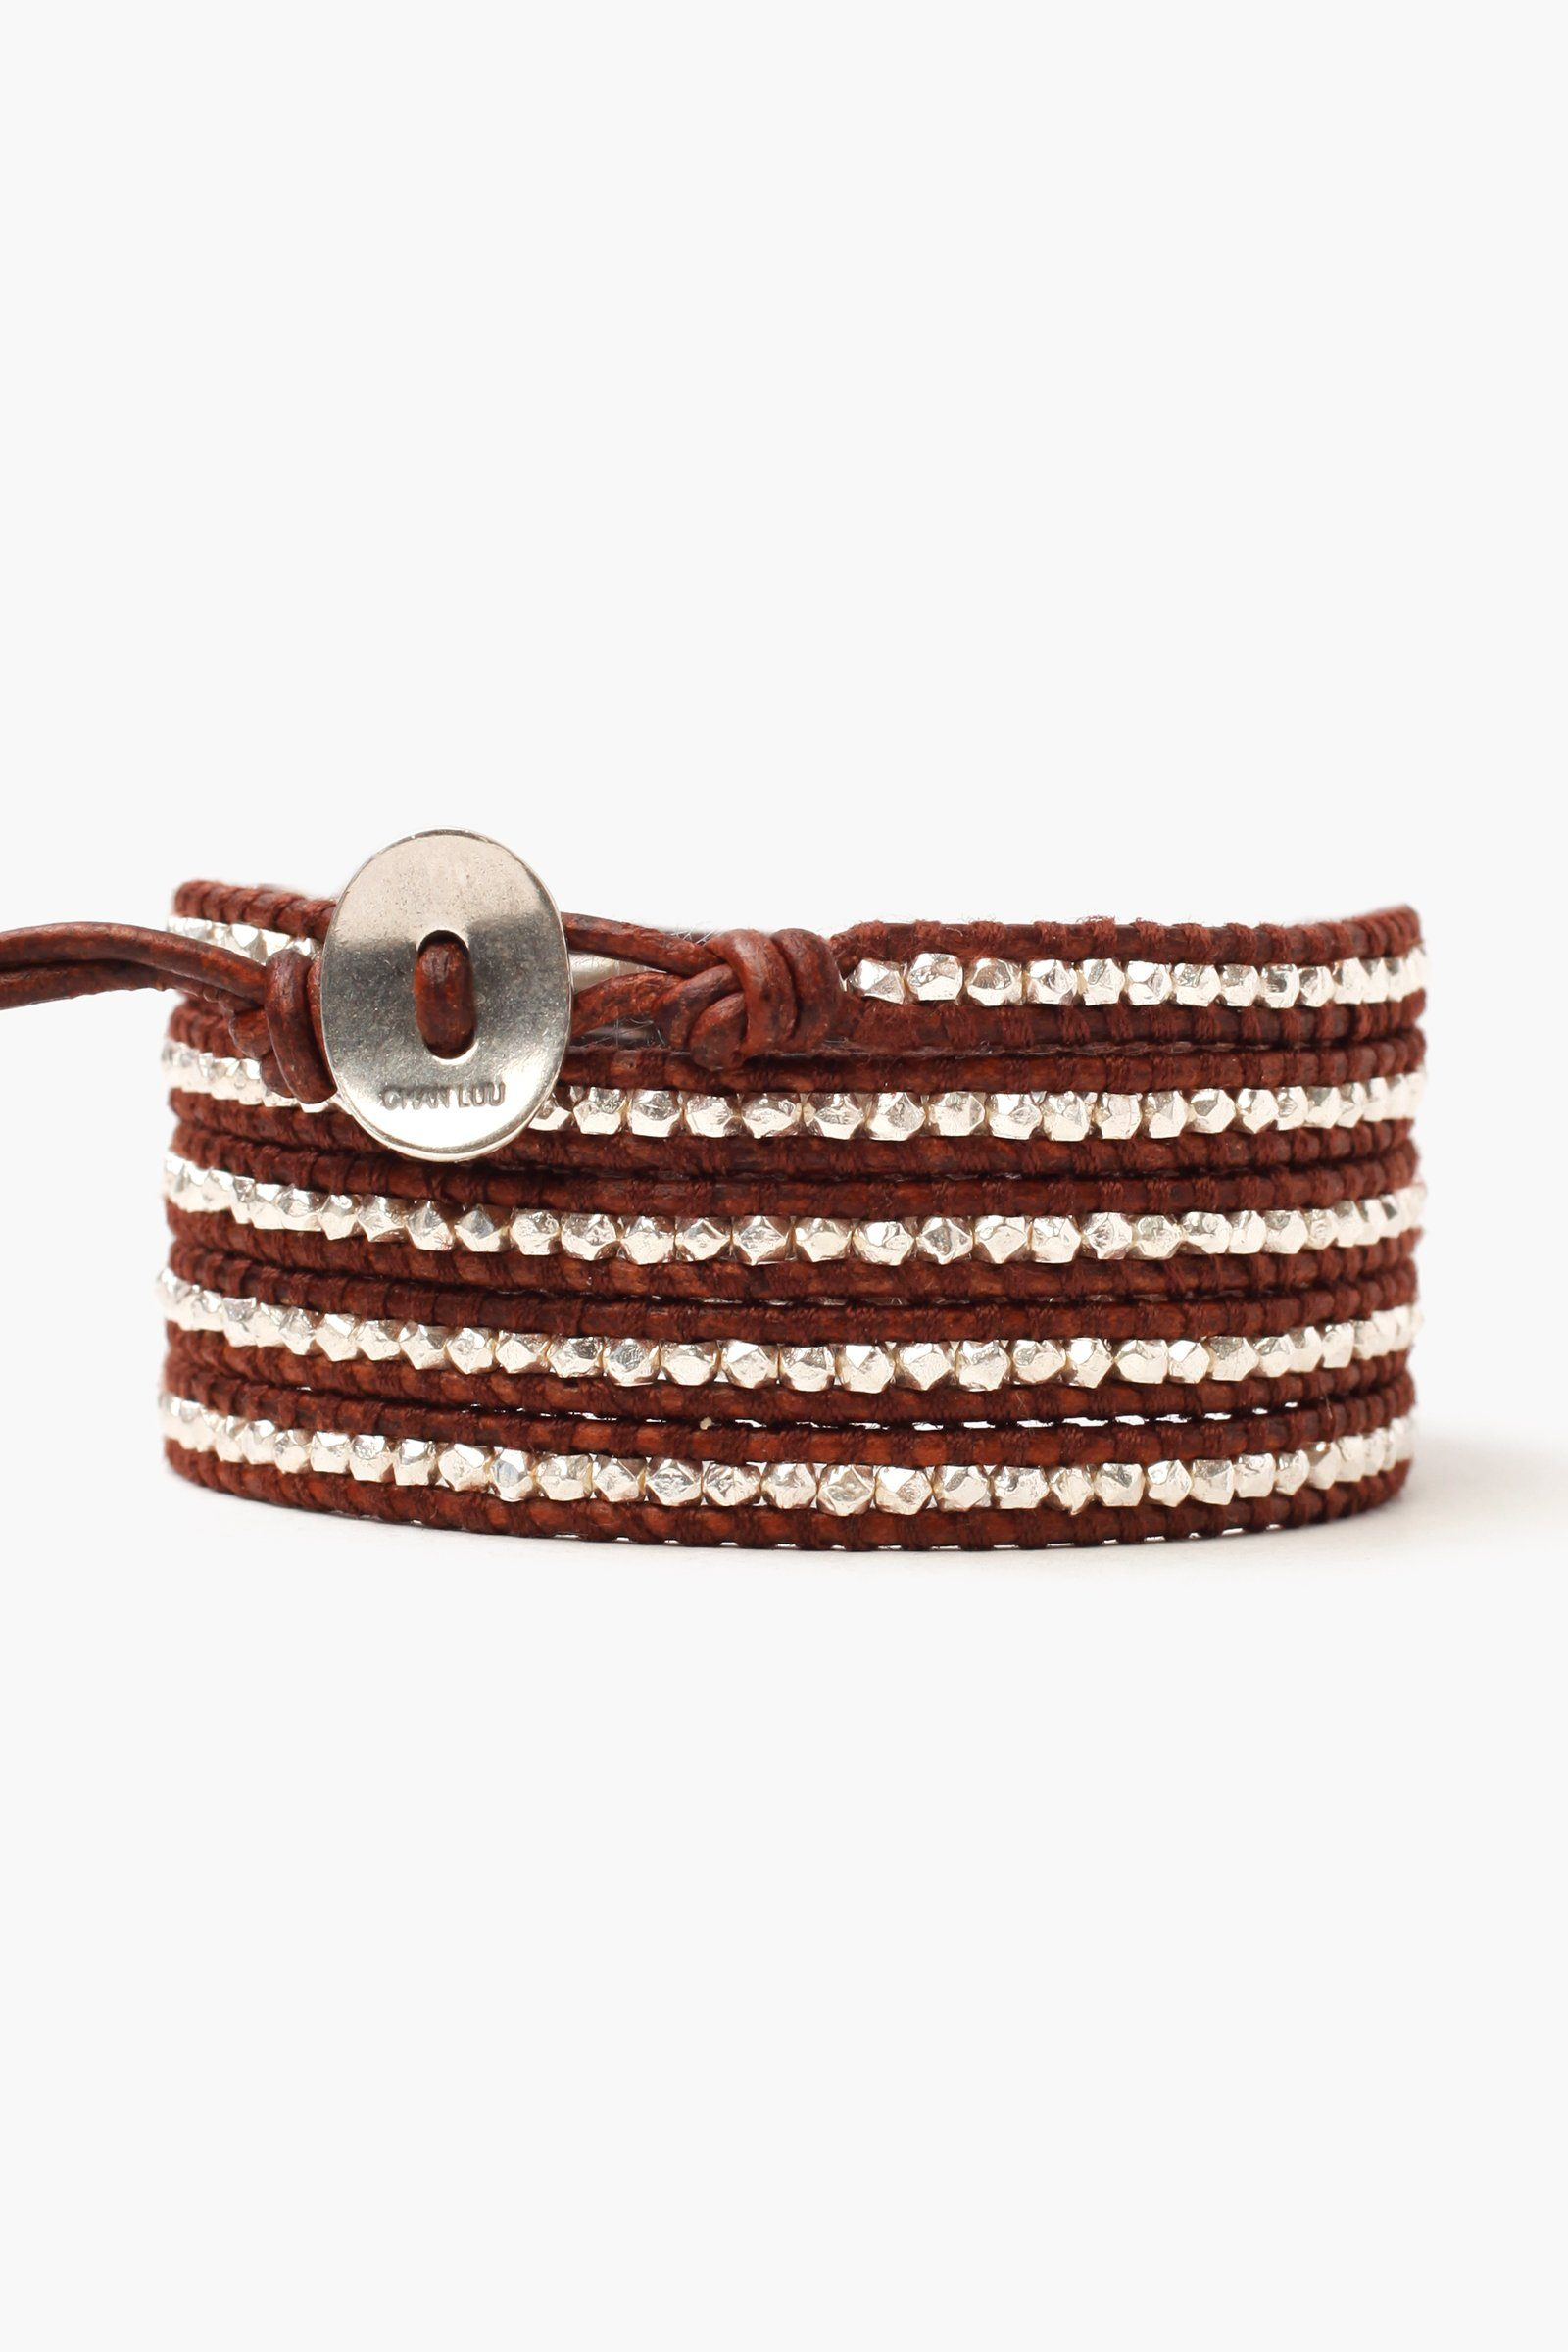 Sterling Silver Men's Wrap Bracelet on Dark Brown Leather